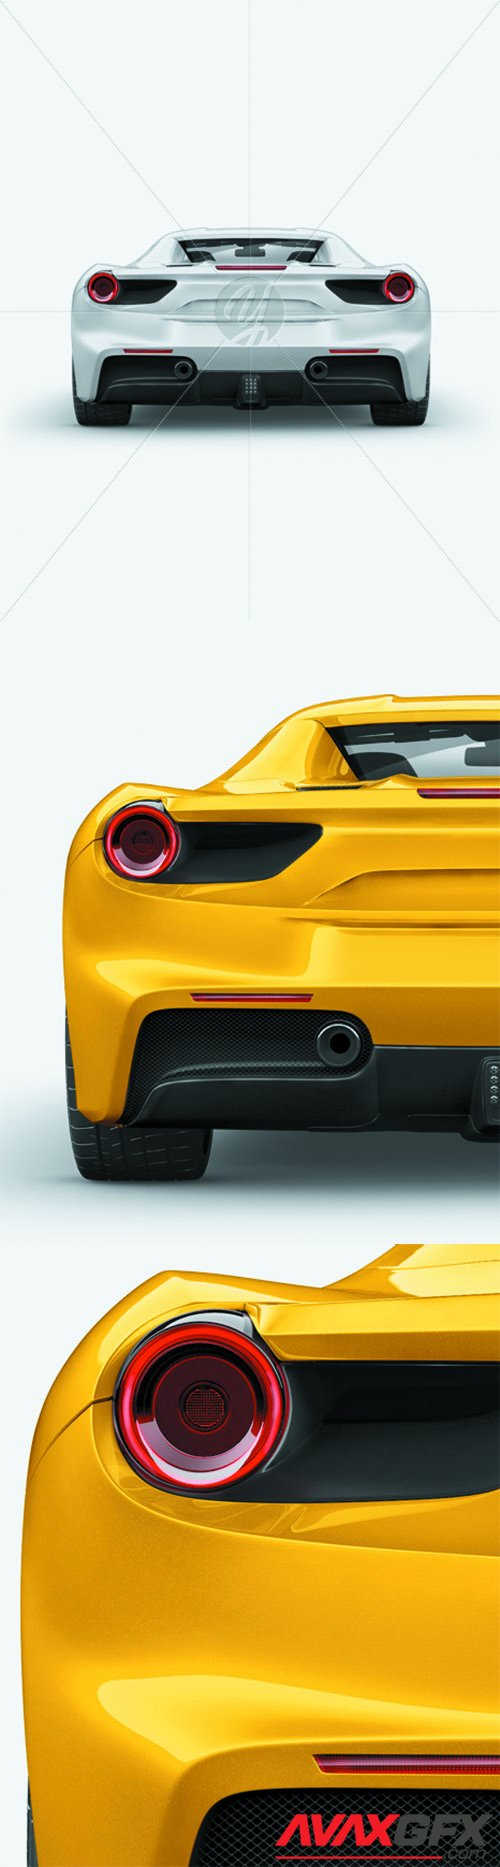 Ferrari 488 Mockup - Back view 26029